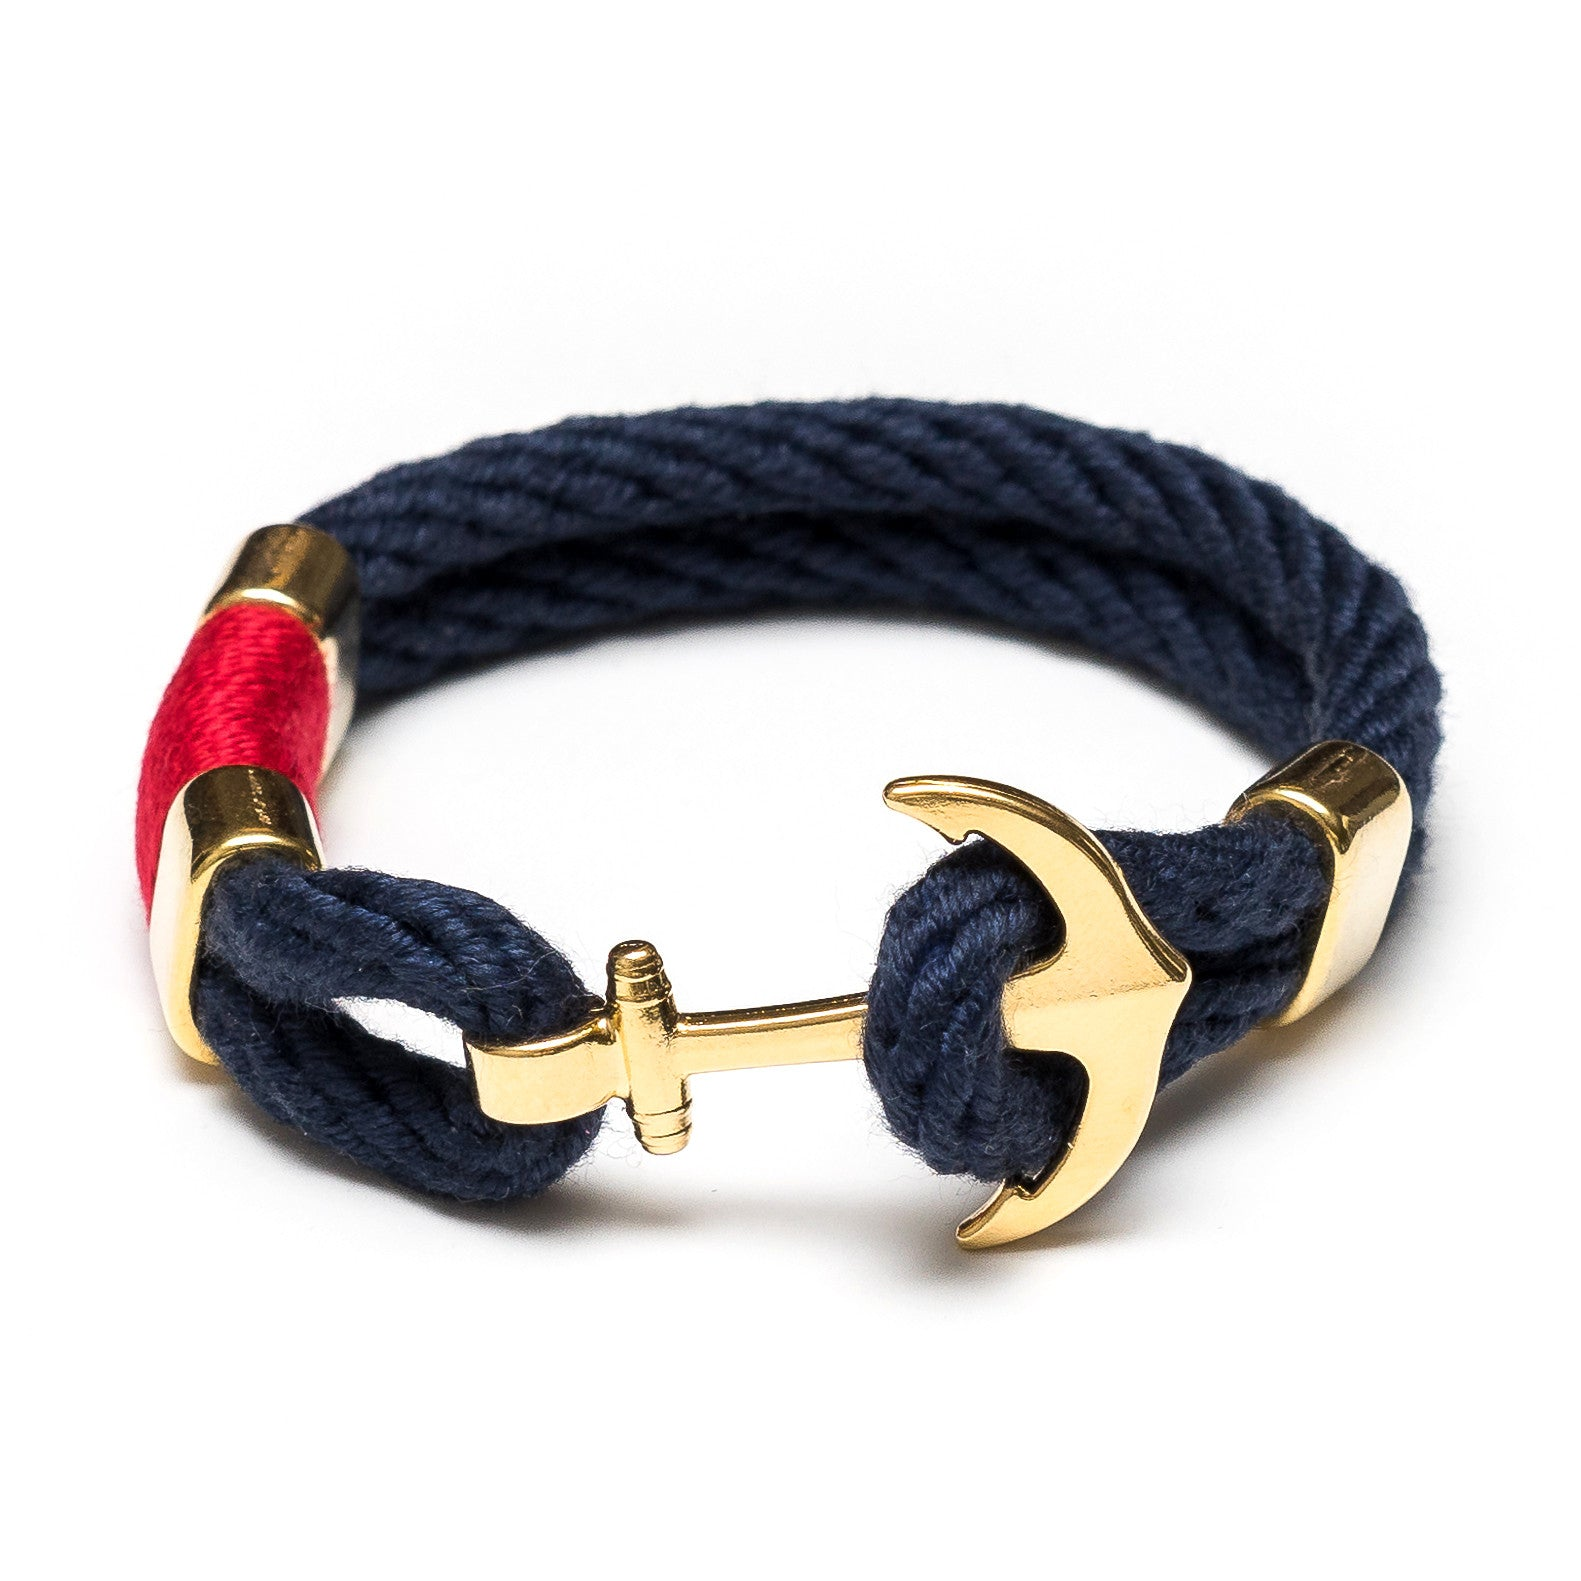 bracelet new blue online navy gold camden designer the ropes womens jewelry in products boutique just